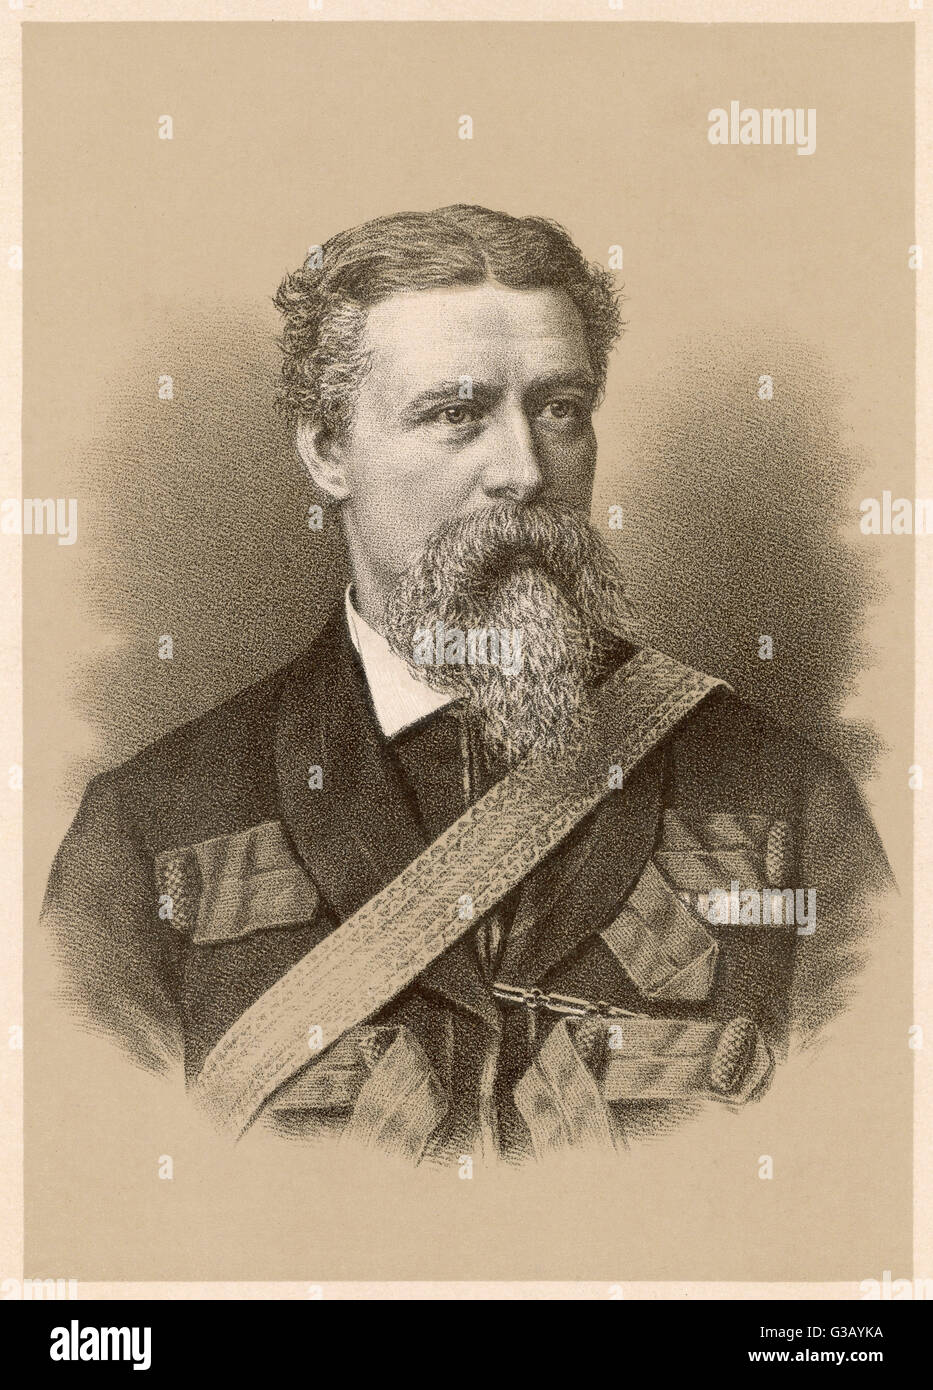 WILLIAM HICKS 'PASHA' English soldier in Egyptian  service, commanded Egyptian  army in the Sudan where - Stock Image